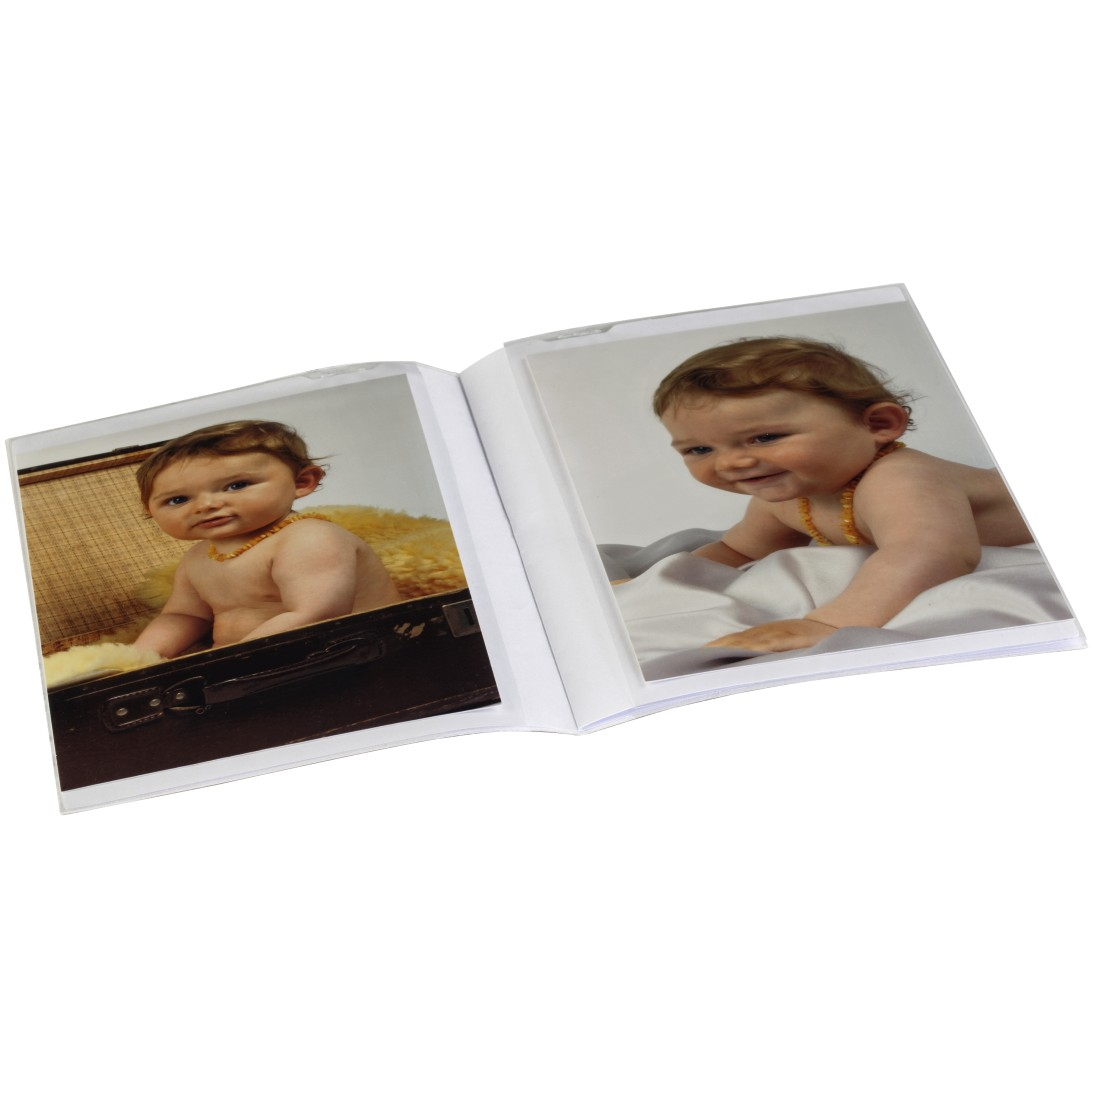 "awx High-Res Appliance - Hama, ""Bernd"" Mini Slip-in Album for 3 x 8 photos with a size of 10x15 cm"